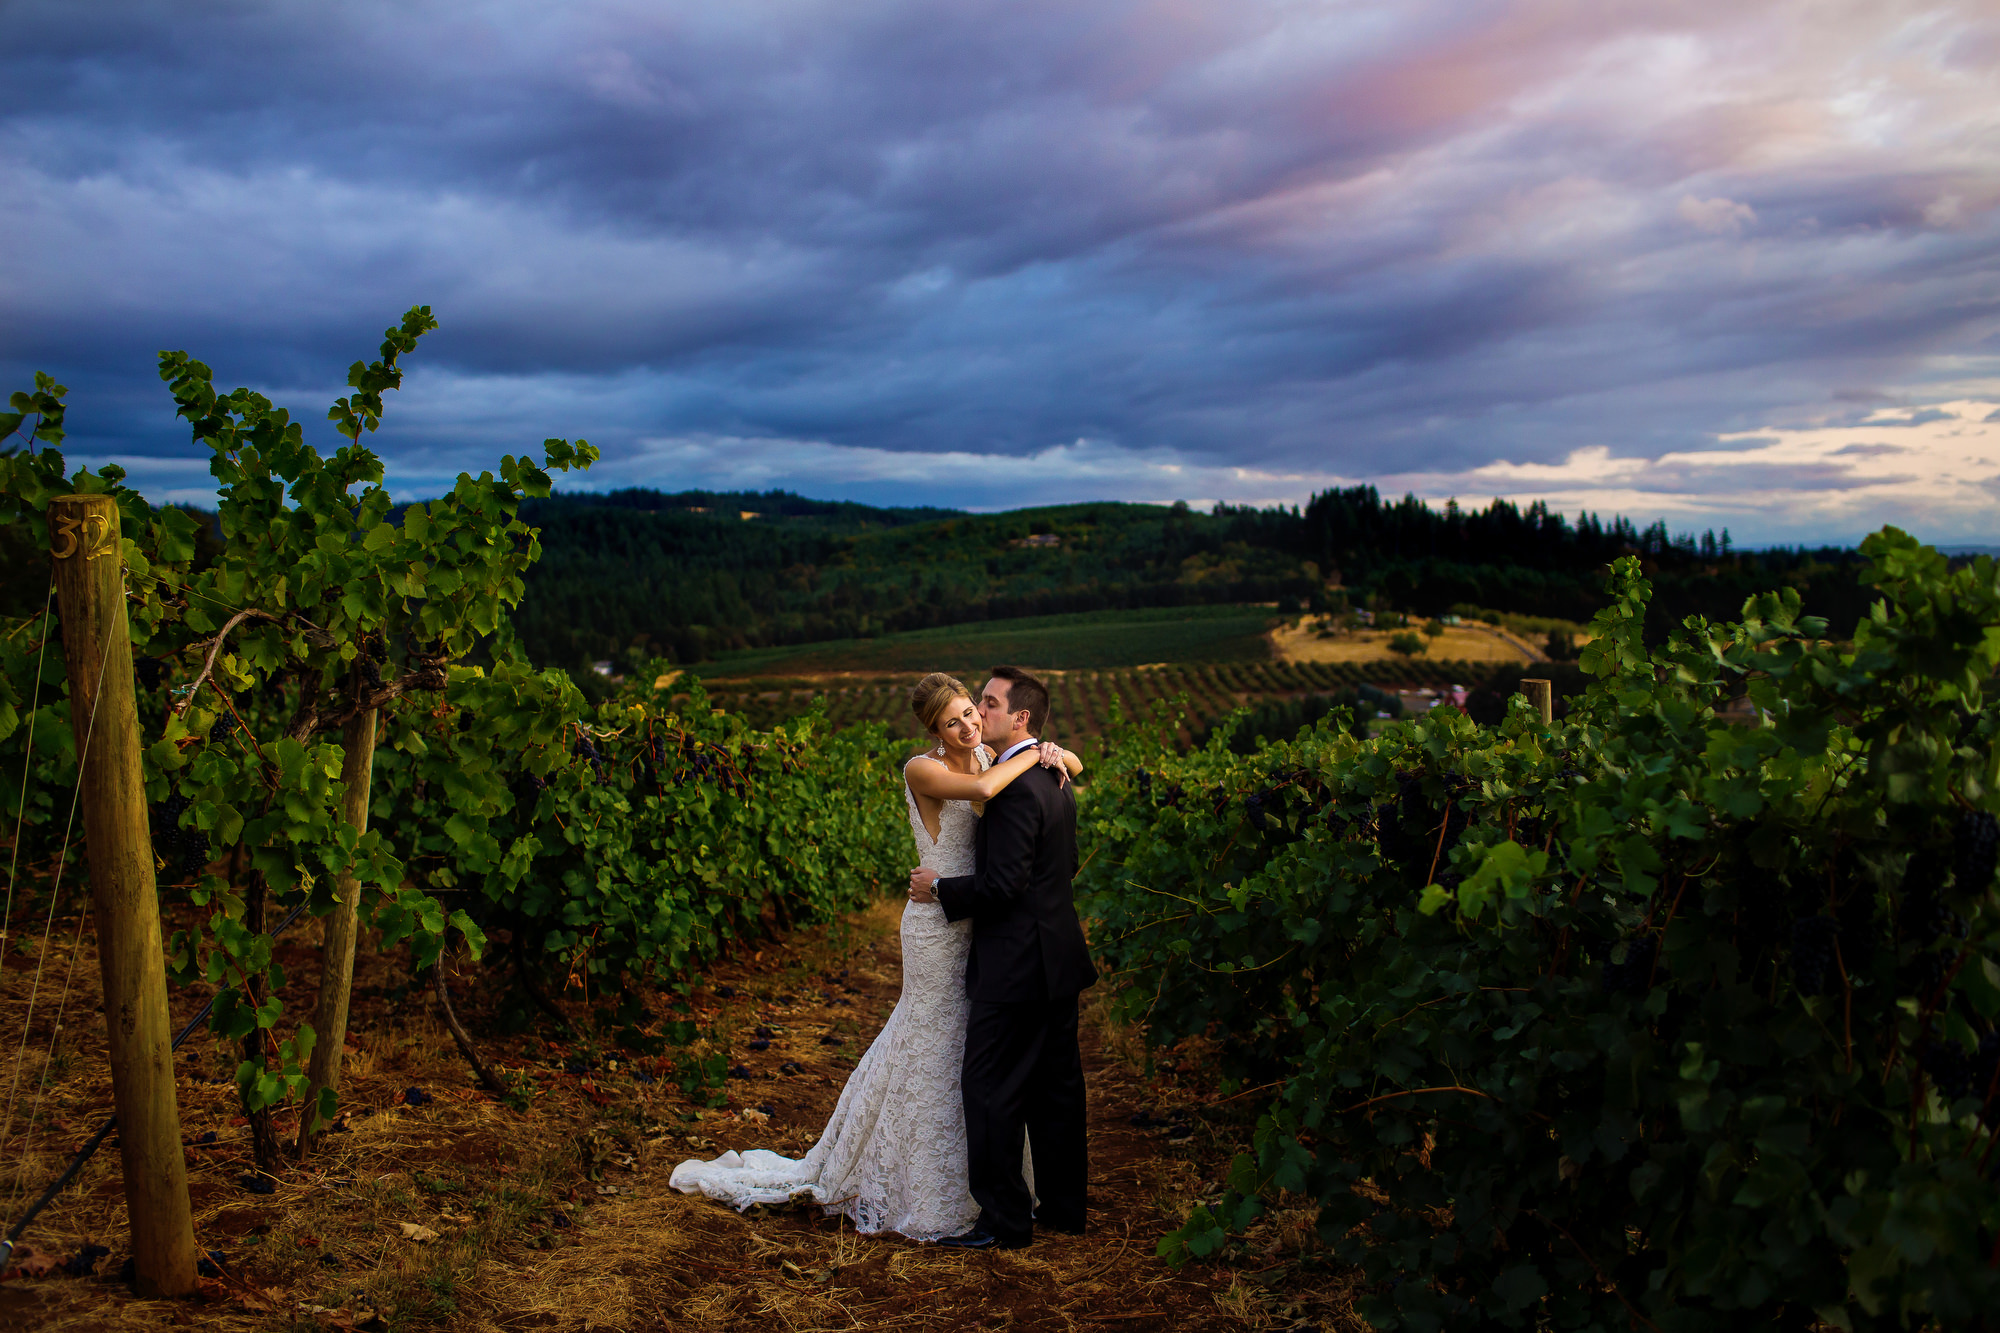 Willamette Valley Vineyards Wedding in beautiful wine country of NW Oregon by stark photography. (13)